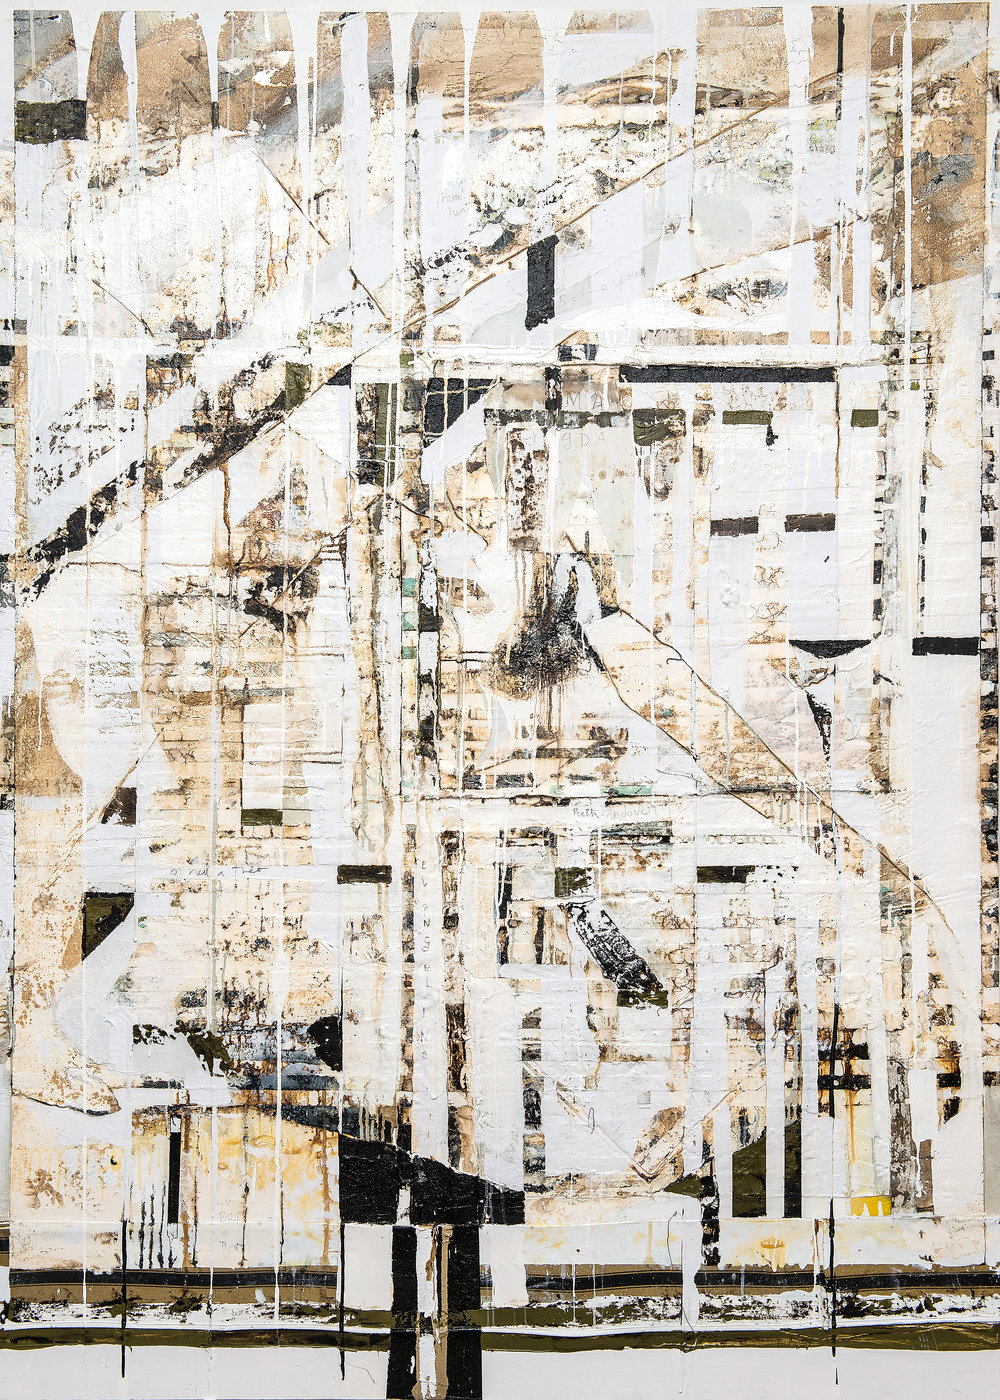 Magda, 2014, 60 x 84 inches, Mixed media